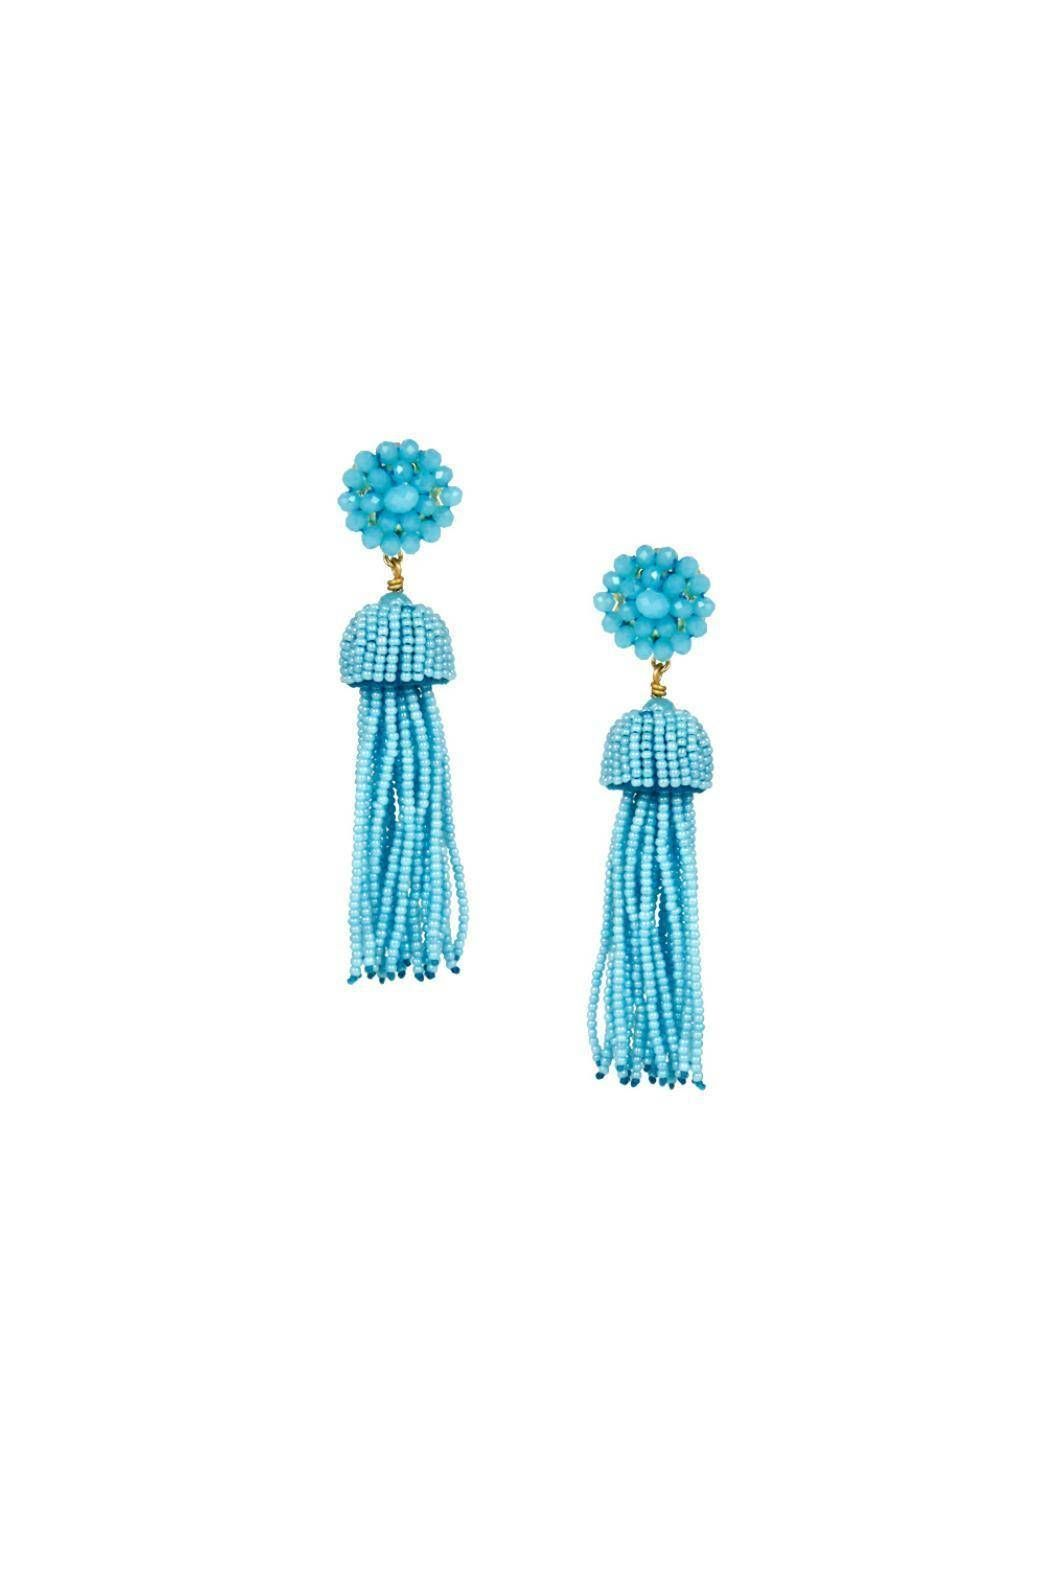 """These glass beaded earrings are 18 grams nickel and feature lead-free post backs. Dimensions: 3.5"""" long       Aqua Tassel Earrings by Lisi Lerch. Accessories - Jewelry - Earrings - Statement Dallas, Texas"""